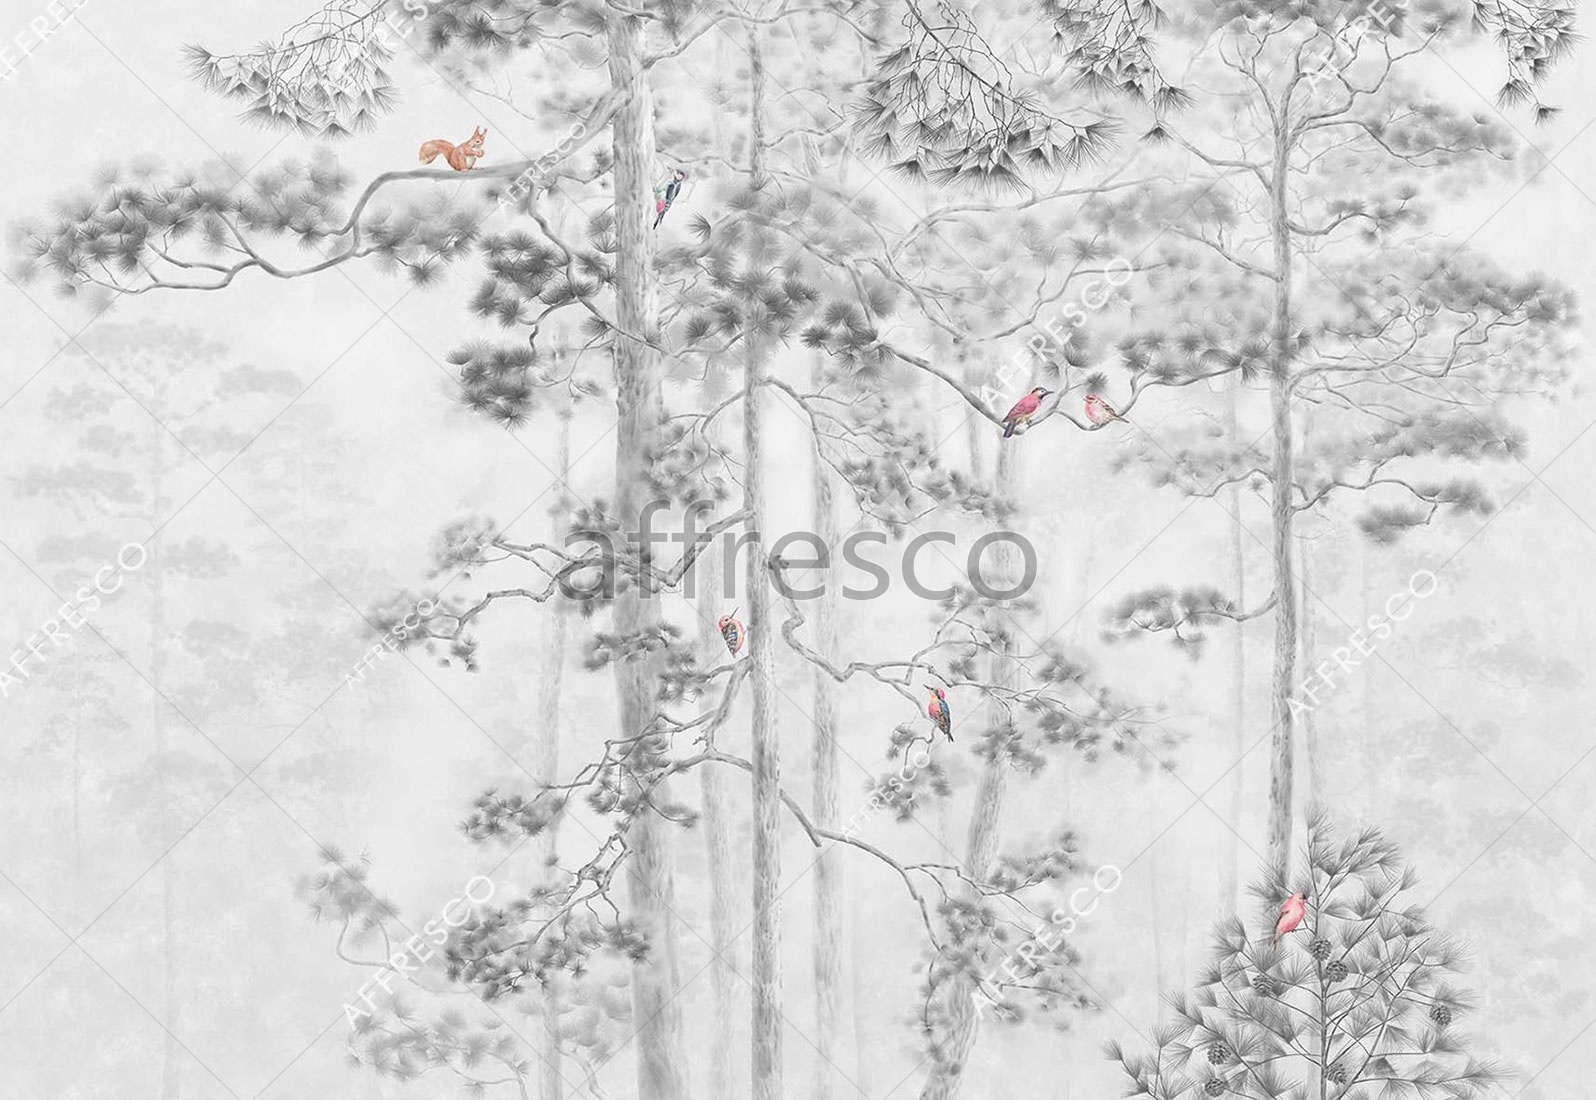 ID137607 | Forest |  | Affresco Factory